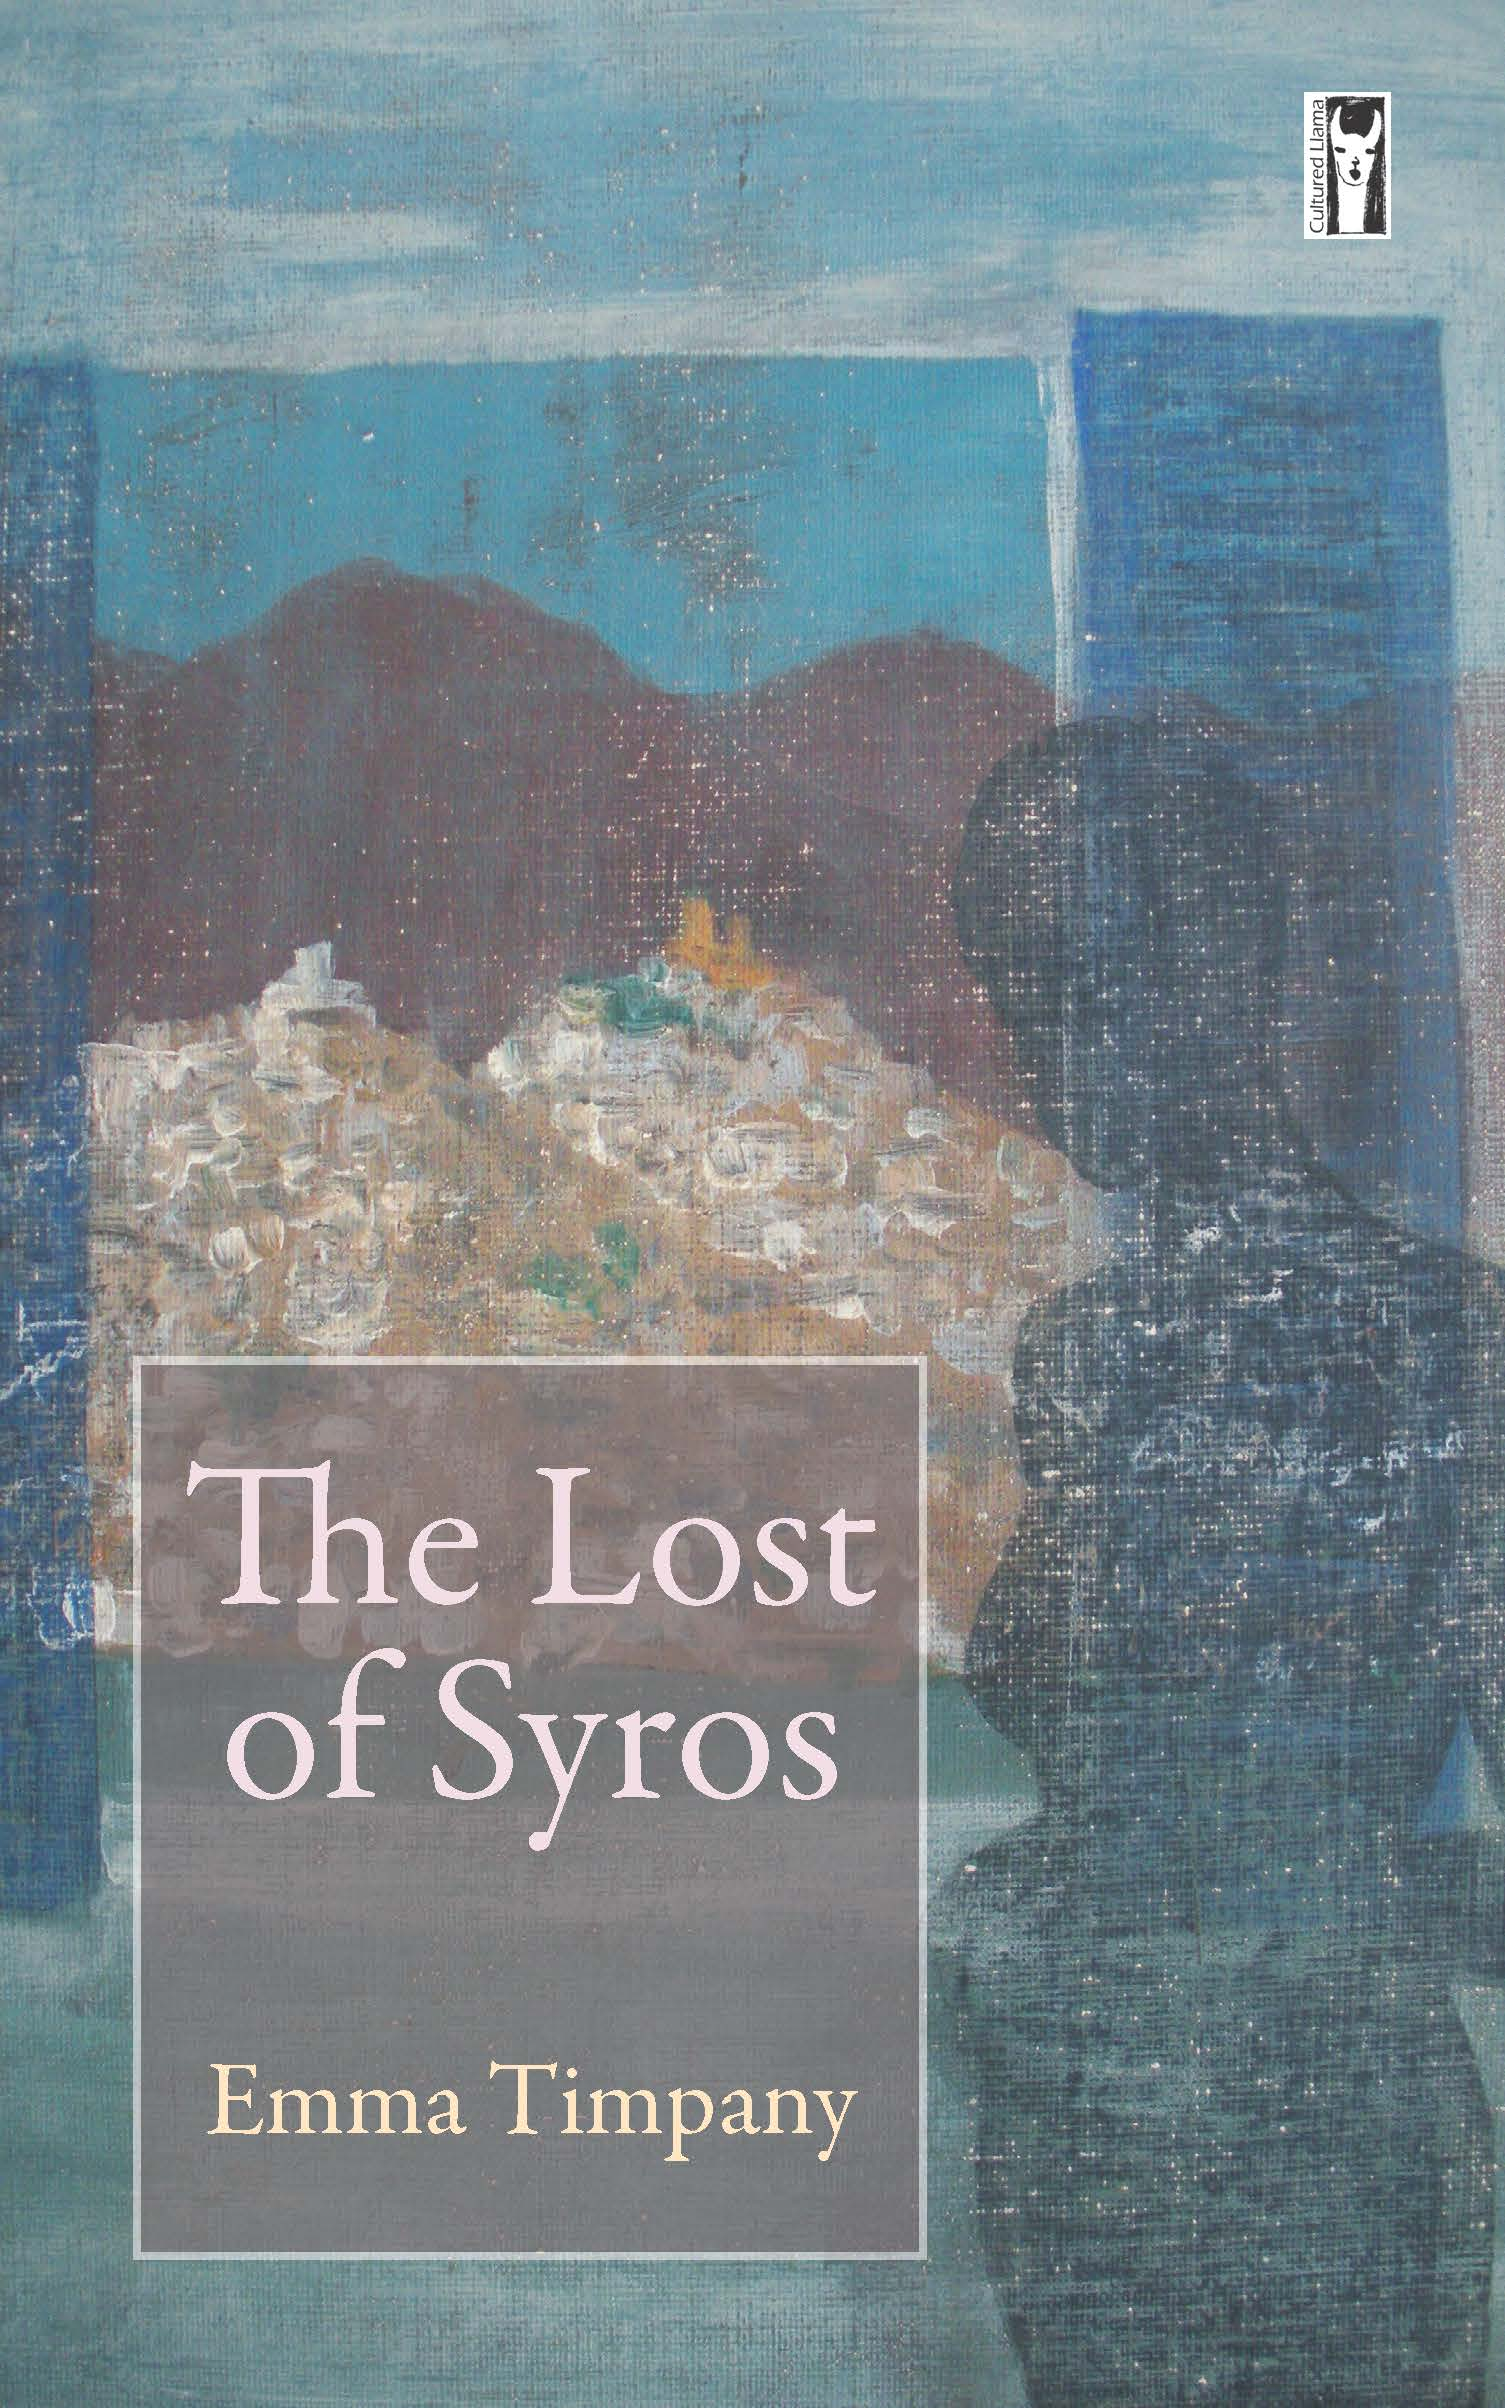 The Lost of Syros by Emma Timpany